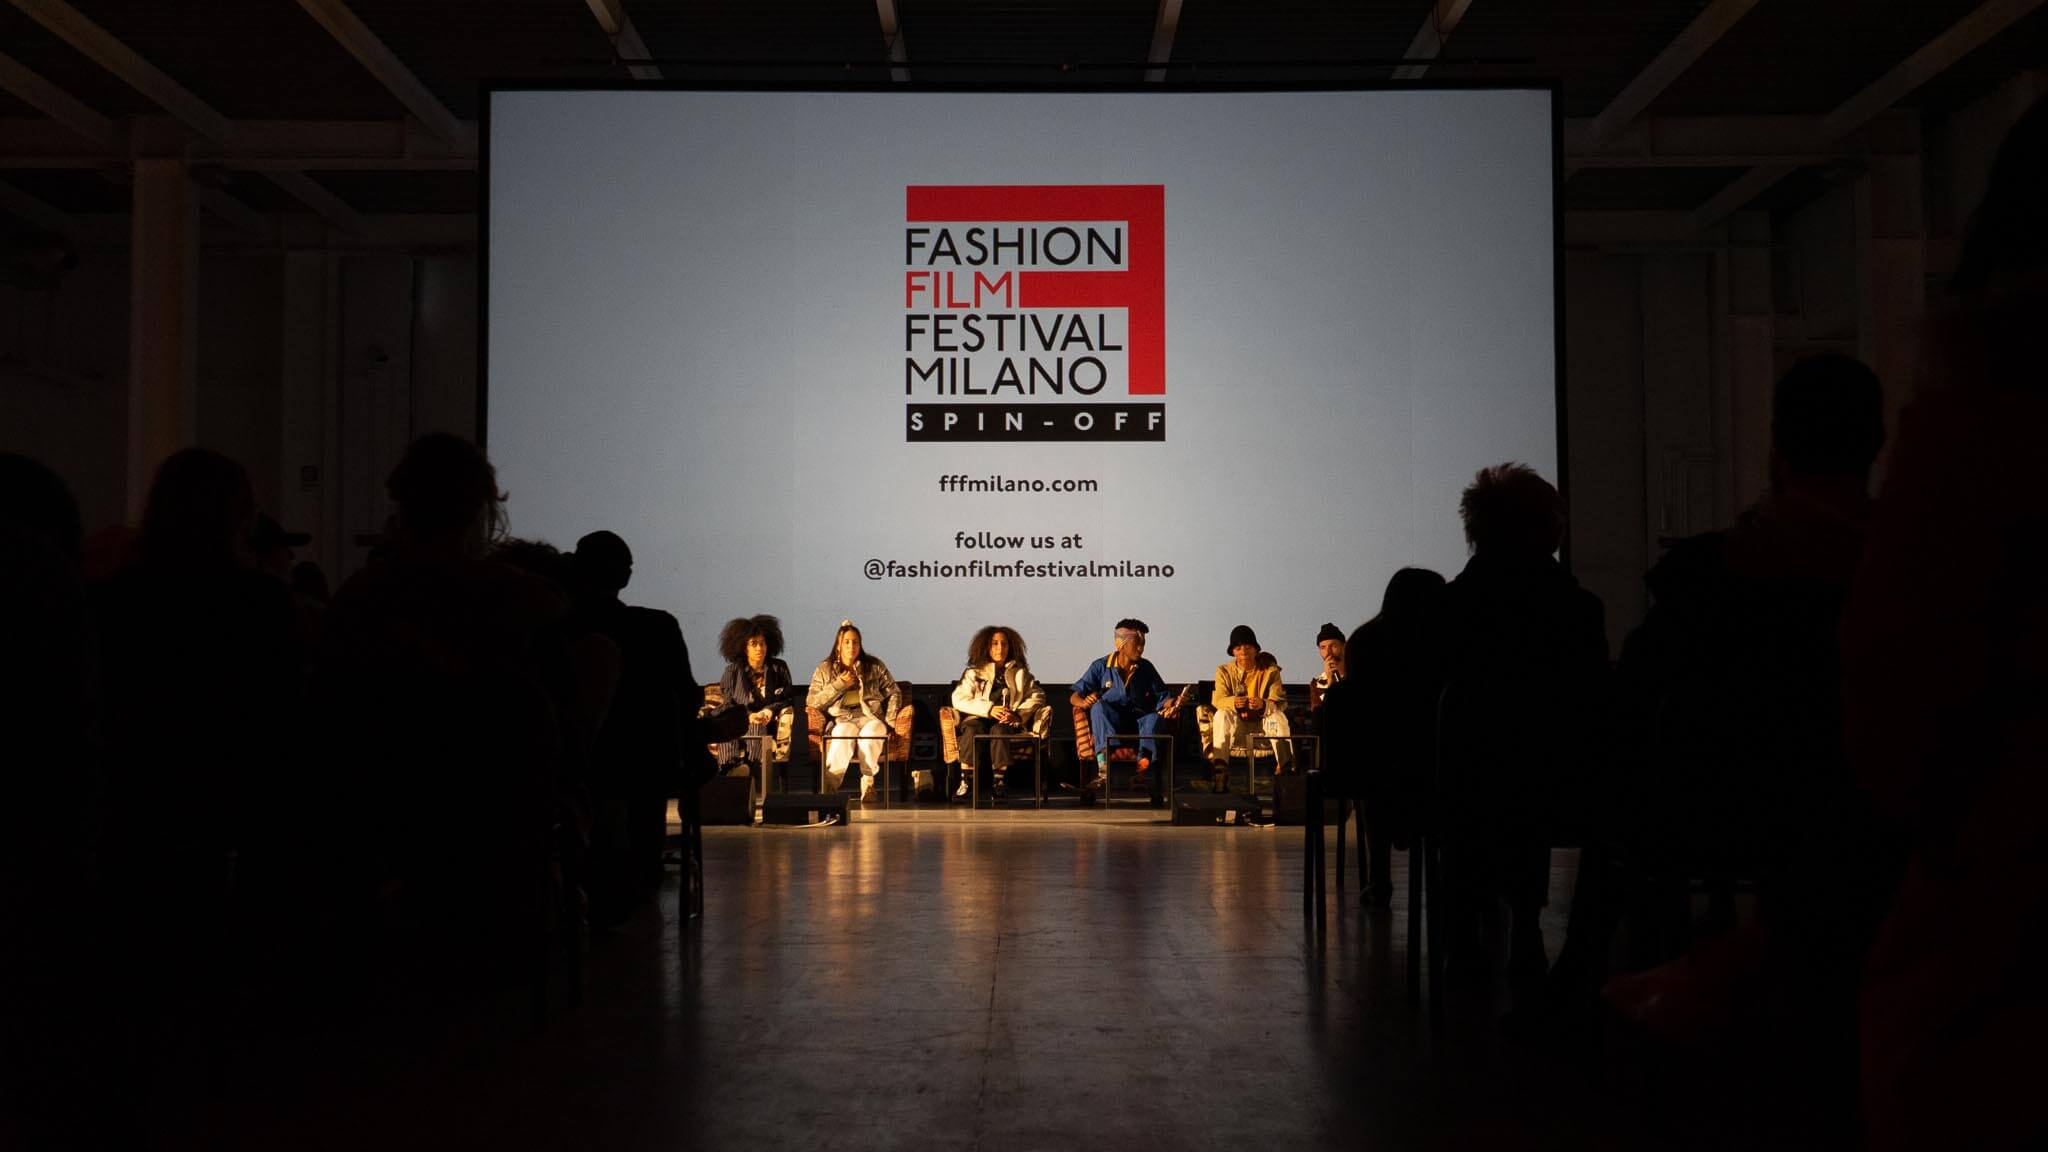 Fashion Film Festival Milano 2019